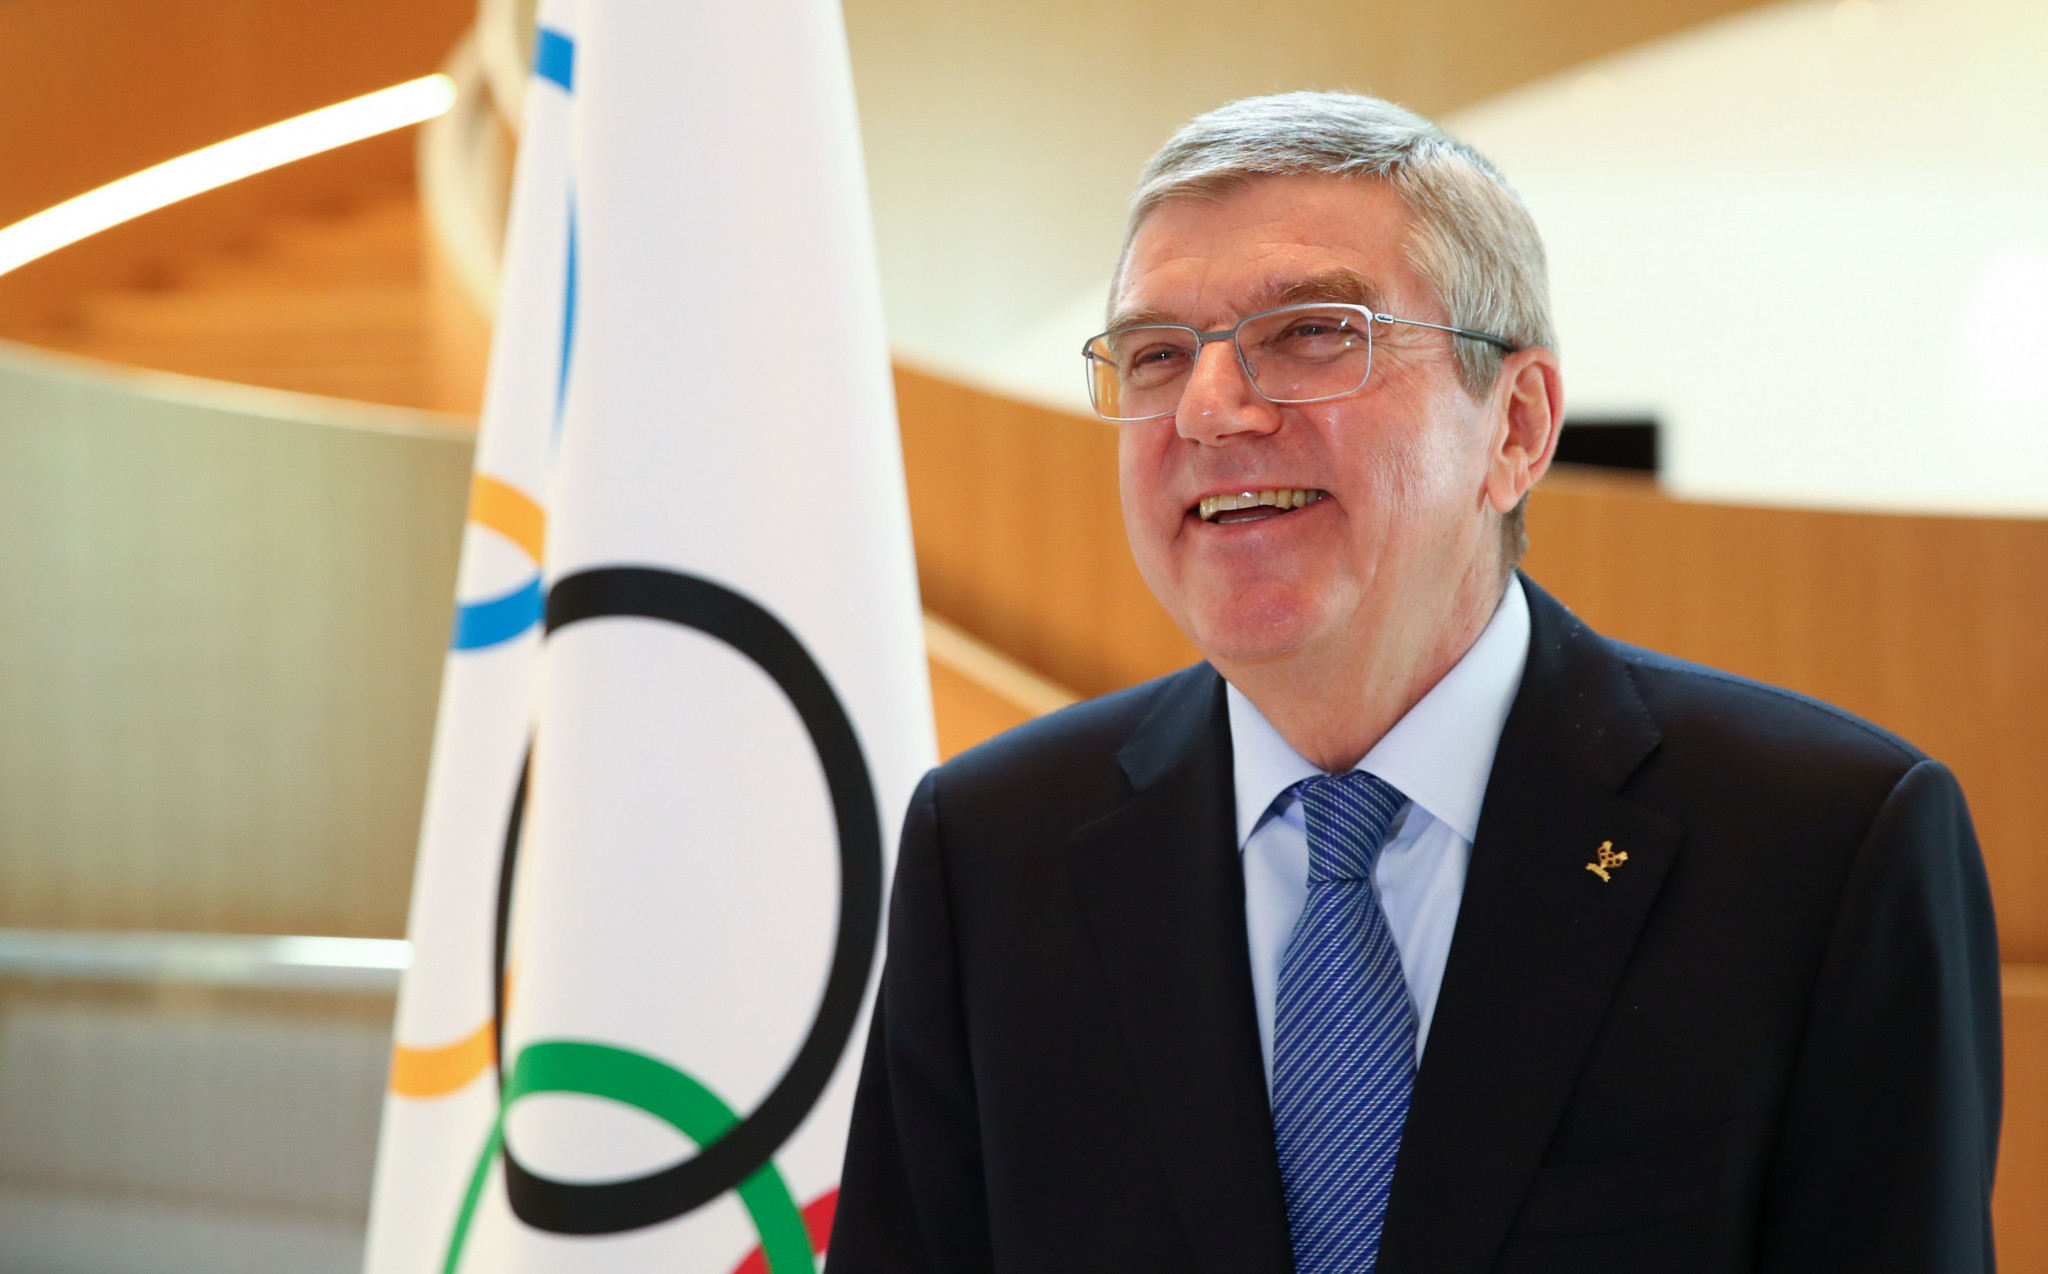 IOC President Thomas Bach acknowledged the Tokyo 2020 Olympic Games would be cancelled if they were not held in 2021 ©Getty Images